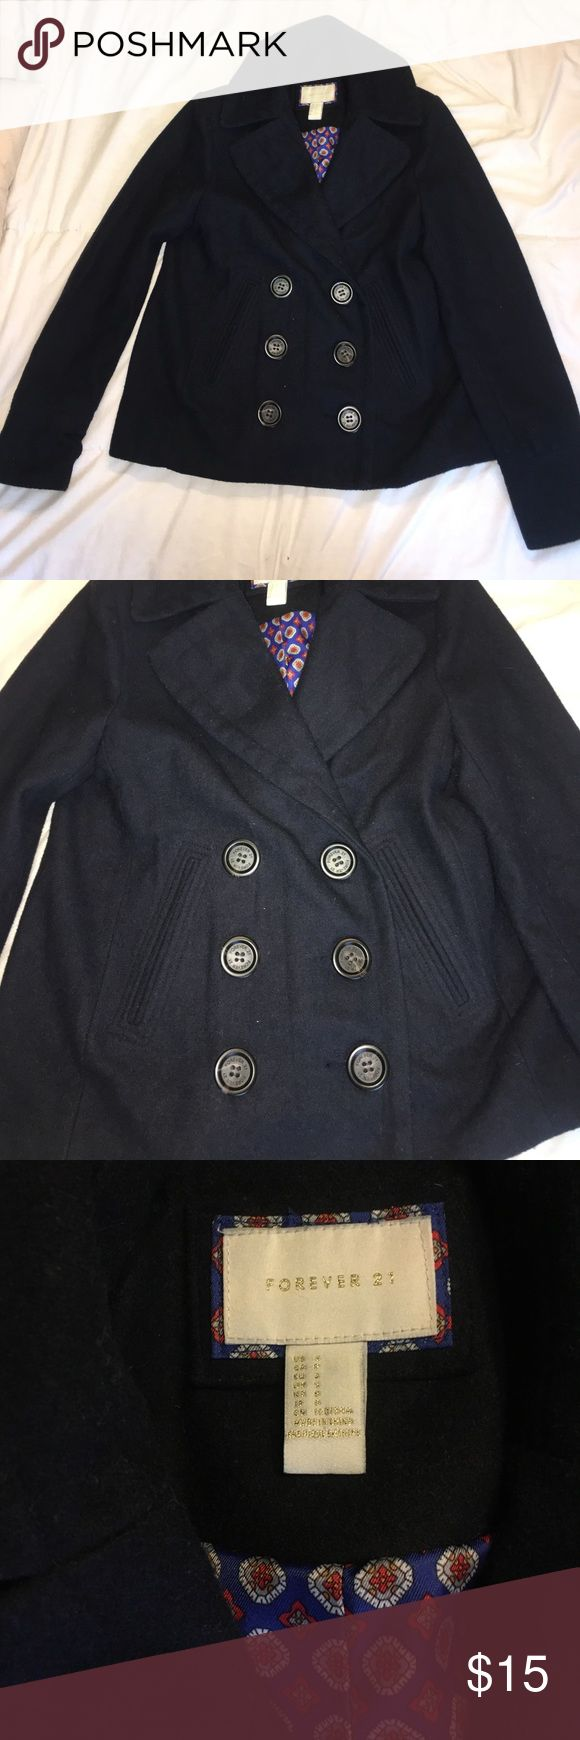 Navy Pea Coat This jacket will definitely keep you warm in the winter!! It is a heavier jacket and can be dressed up or down. It is in great condition and looks like it too! Forever 21 Jackets & Coats Pea Coats